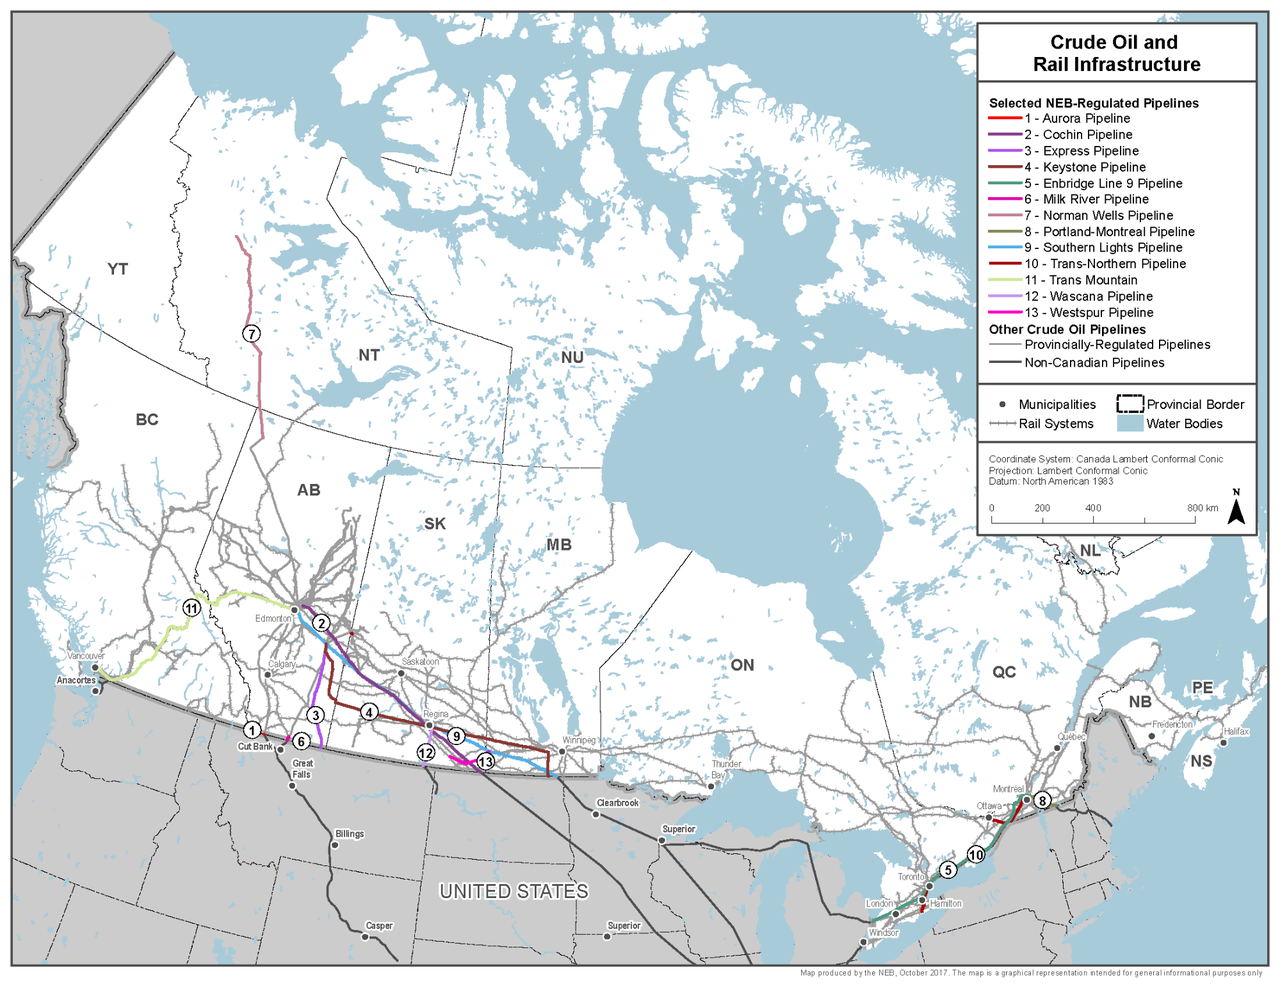 Crude Oil and Rail Infrastructure (via Natural Resources Canada)